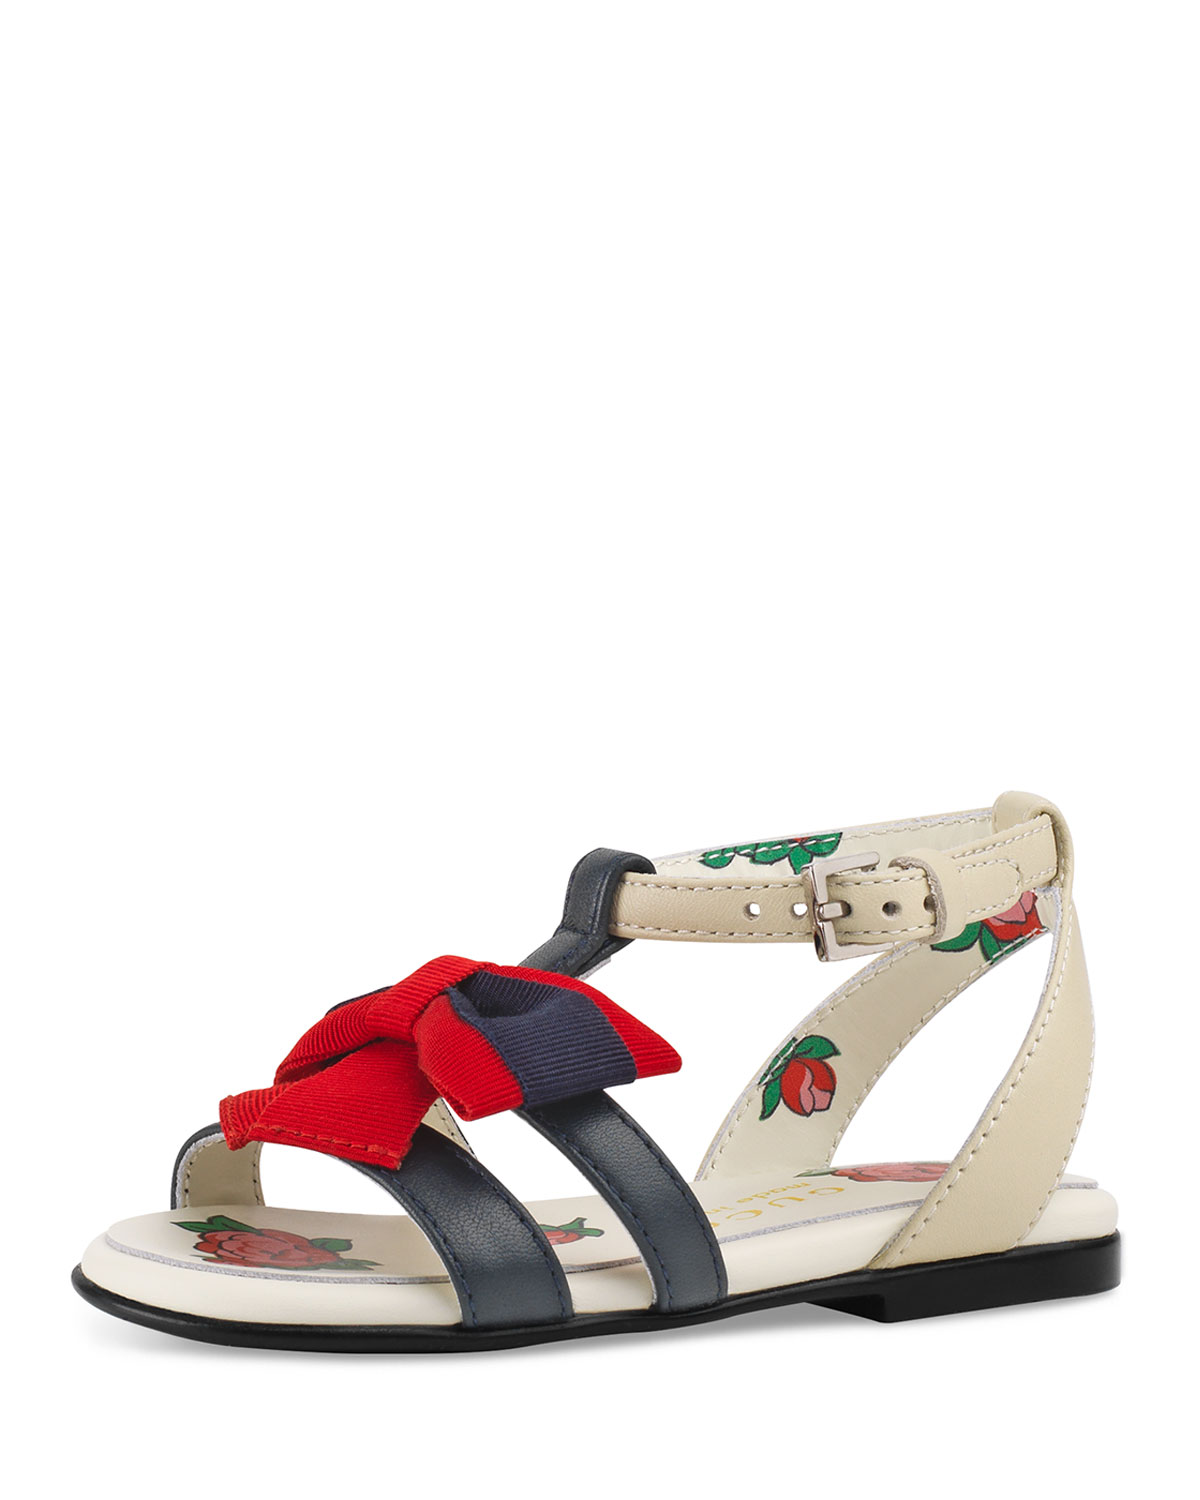 10c310cd5 Gucci Jane Two-Tone Leather Web-Bow Sandal